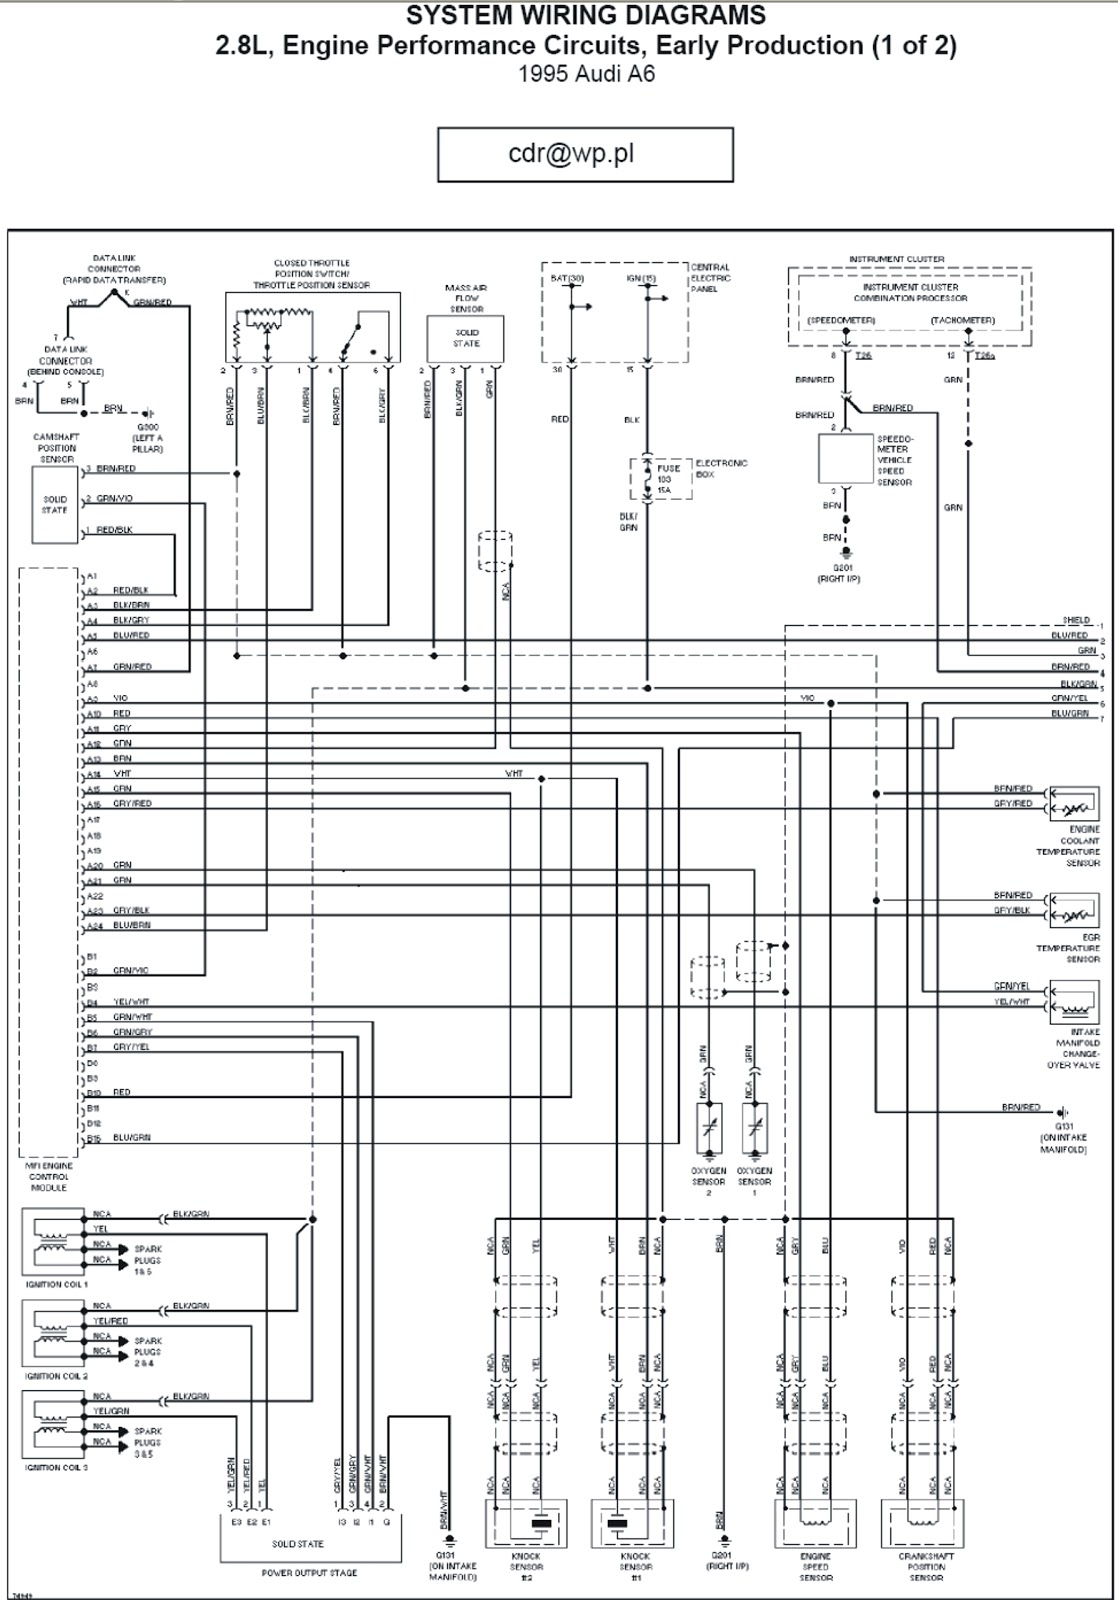 Mechman Alternator Wiring Diagram from 3.bp.blogspot.com